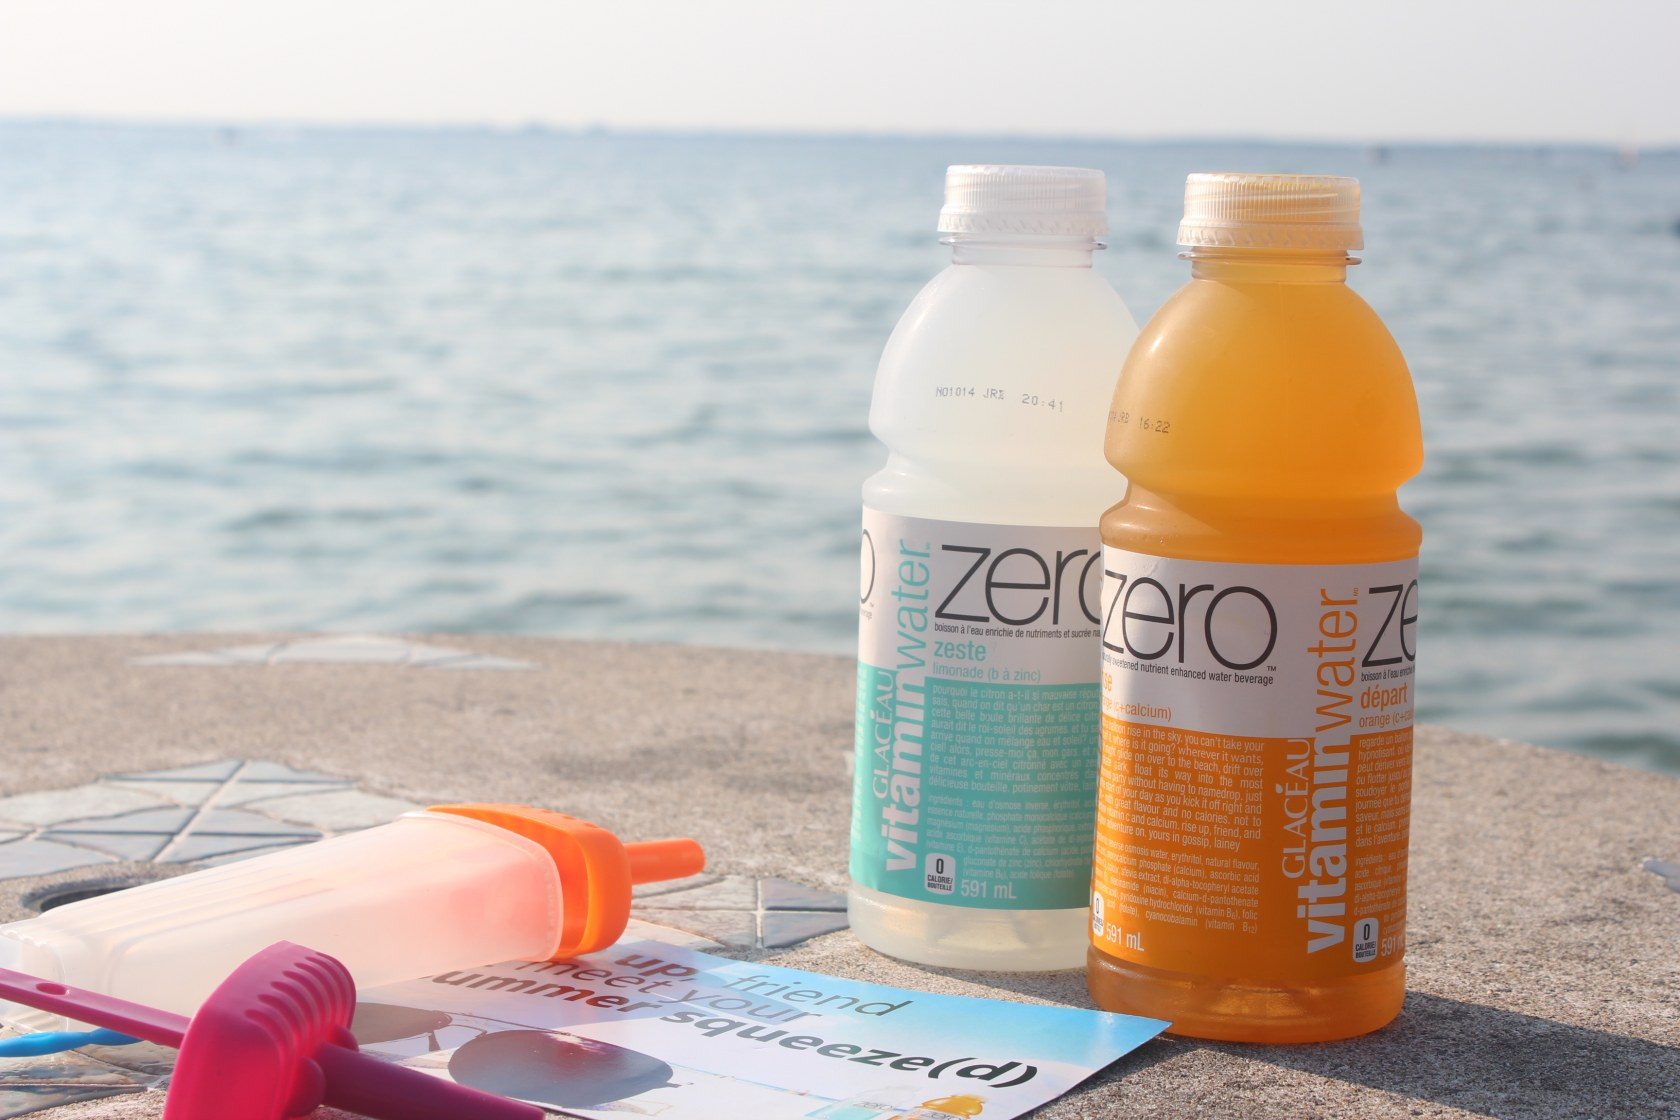 Vitamin Water offers up $100k to ditch your smartphone for a year